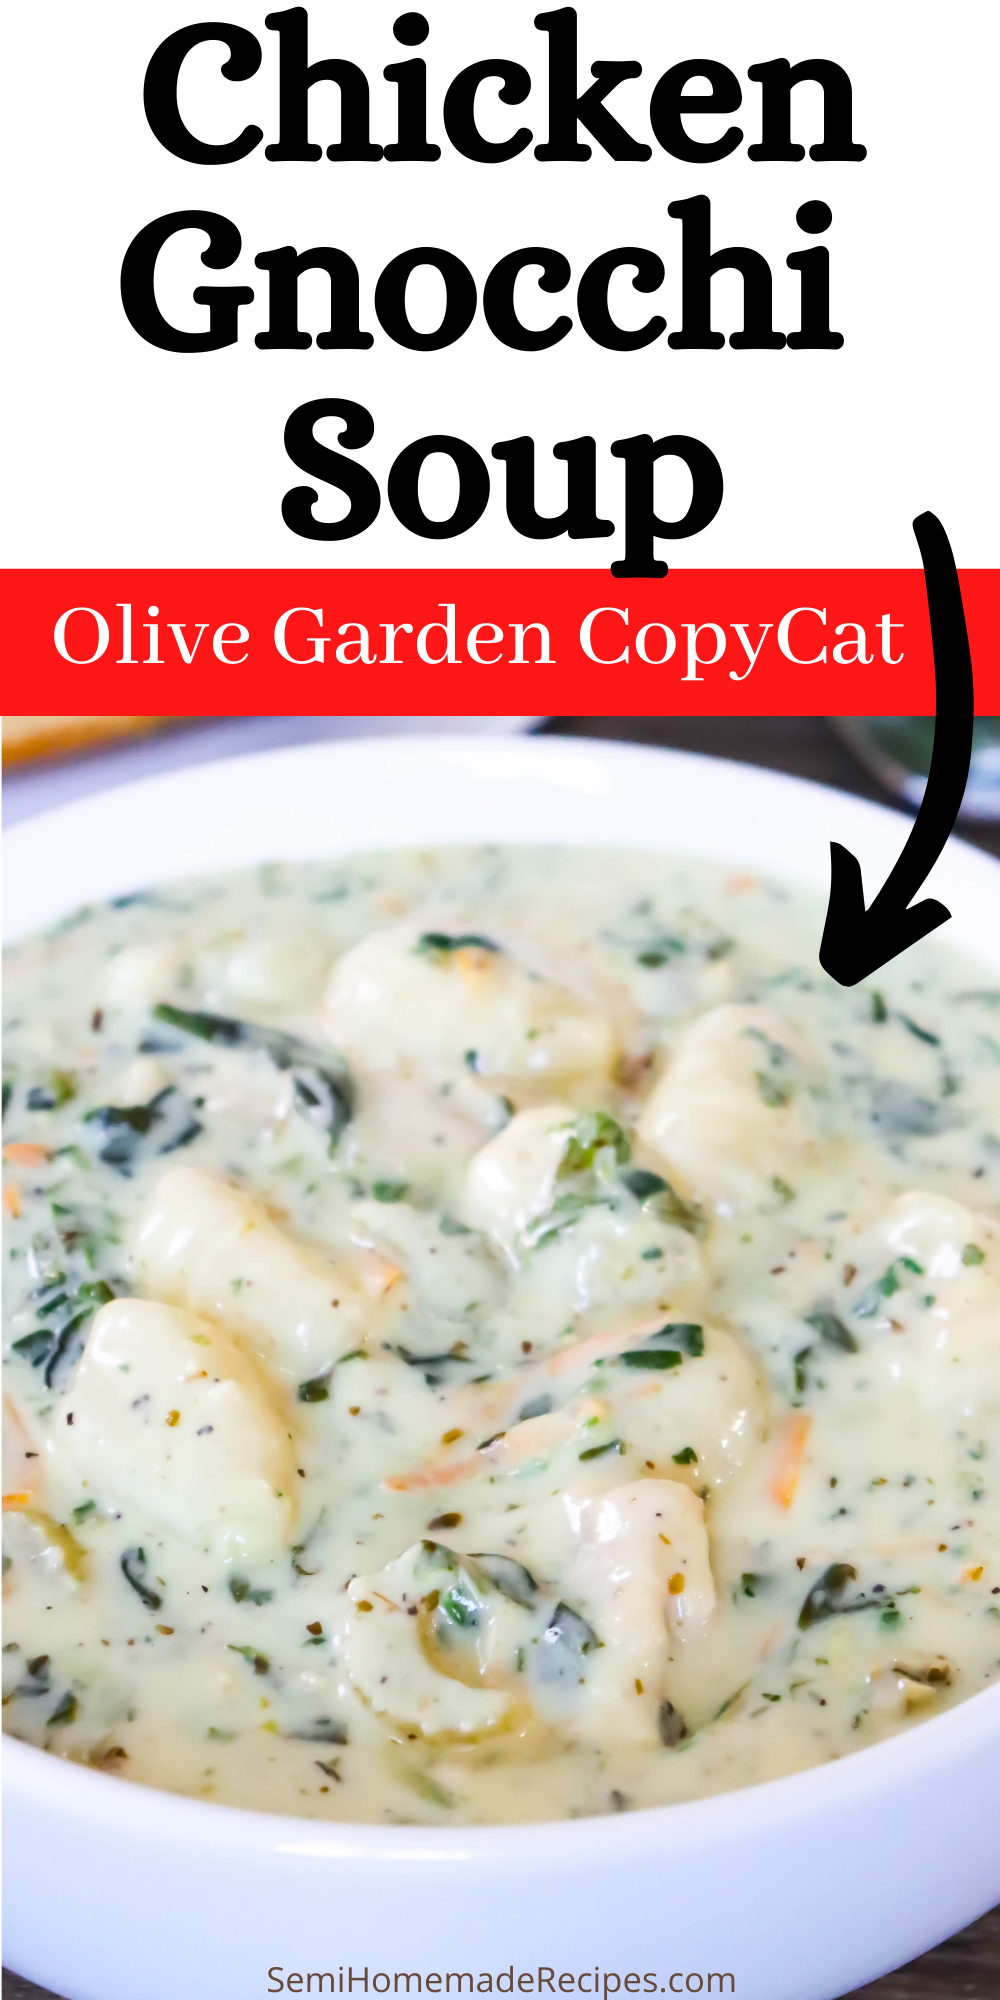 Love the Chicken Gnocchi Soup from Olive Garden? If so, you're going to fall head over heals for this Olive Garden Copycat recipe! This soup is Better Than Olive Garden Chicken Gnocchi Soup and it's full of flavor, chicken and gnocchi!